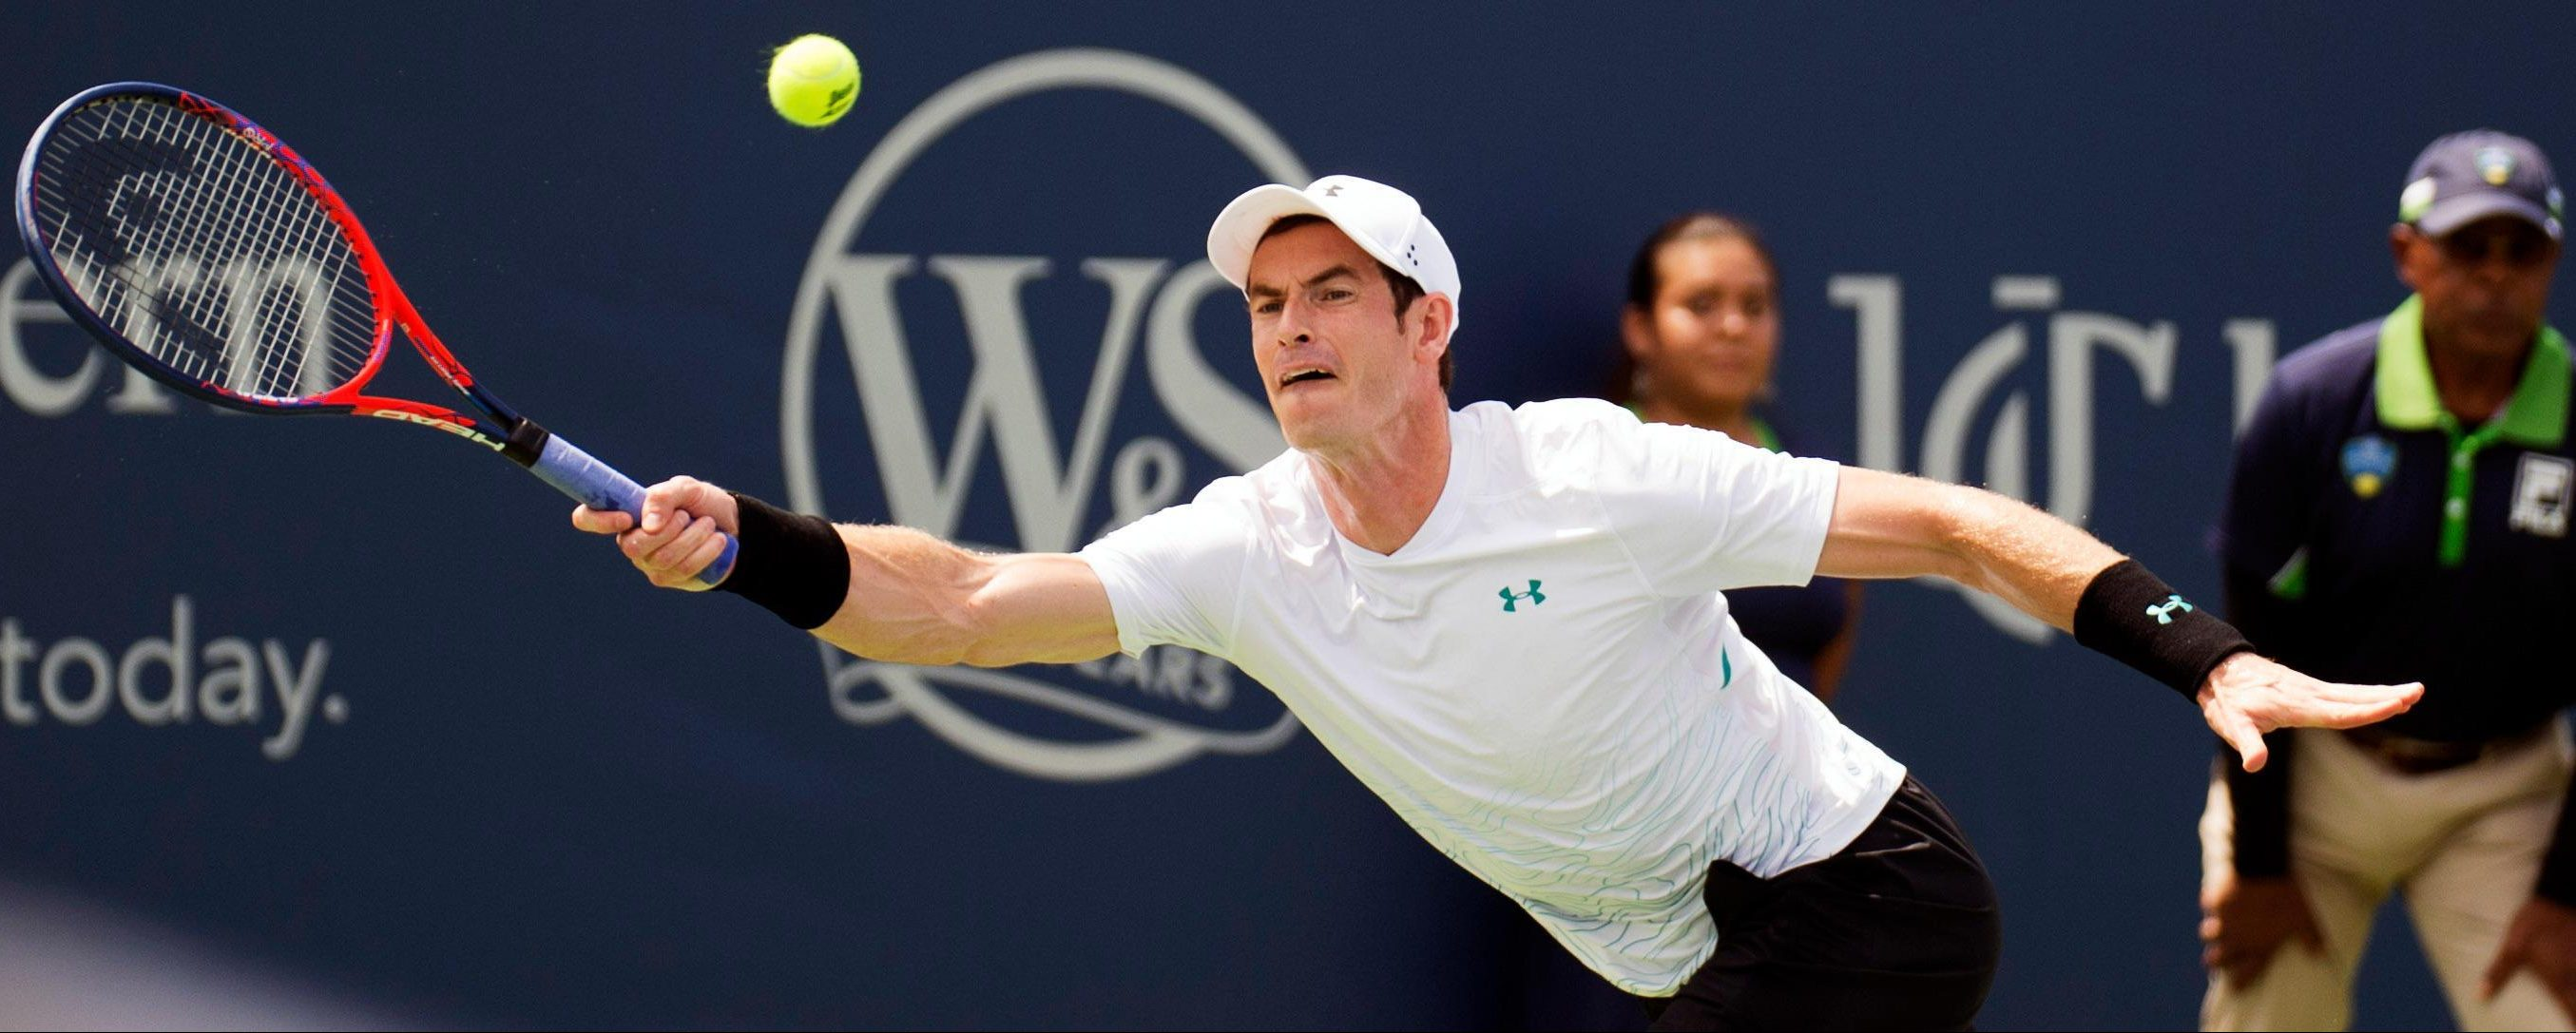 Andy Murray stormed back to win the second set but then his level dropped as Lucas Pouille won 6-1 1-6 6-4